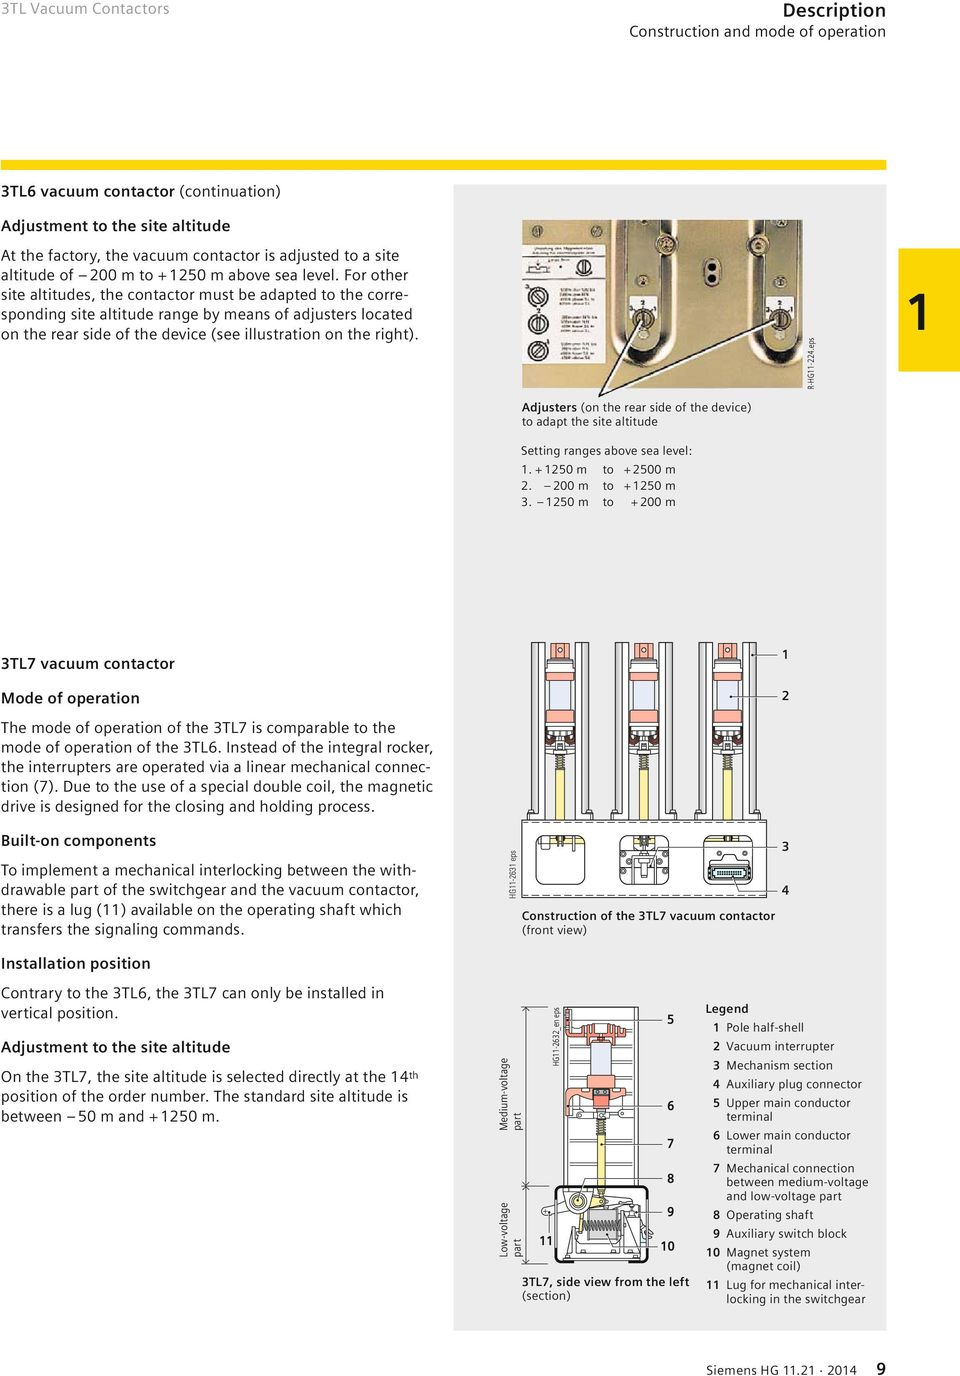 For other site altitudes, the contactor must be adapted to the  corresponding site altitude range